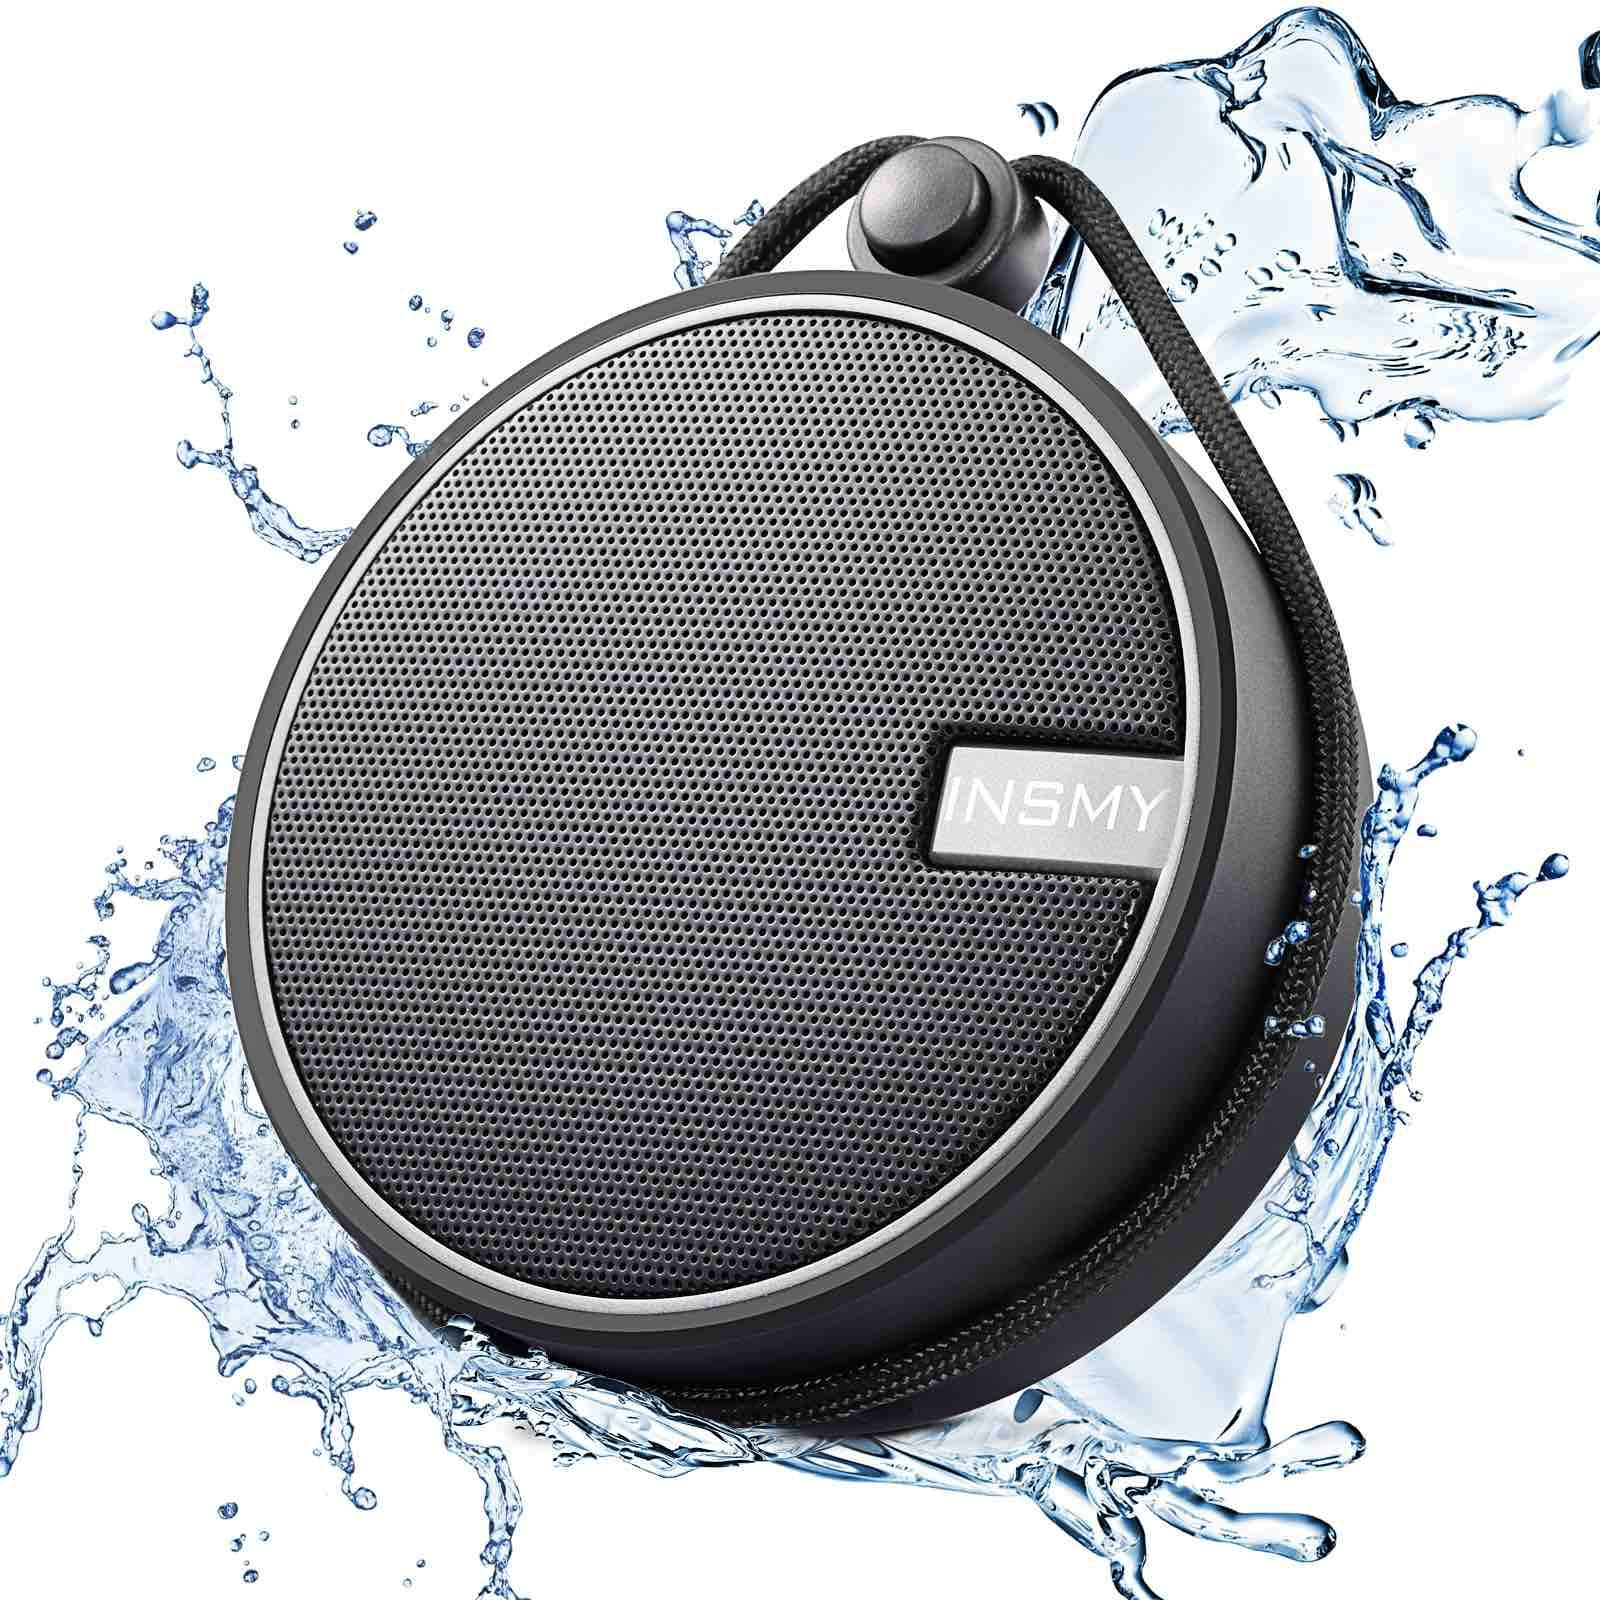 INSMY Portable Bluetooth Waterproof Wireless